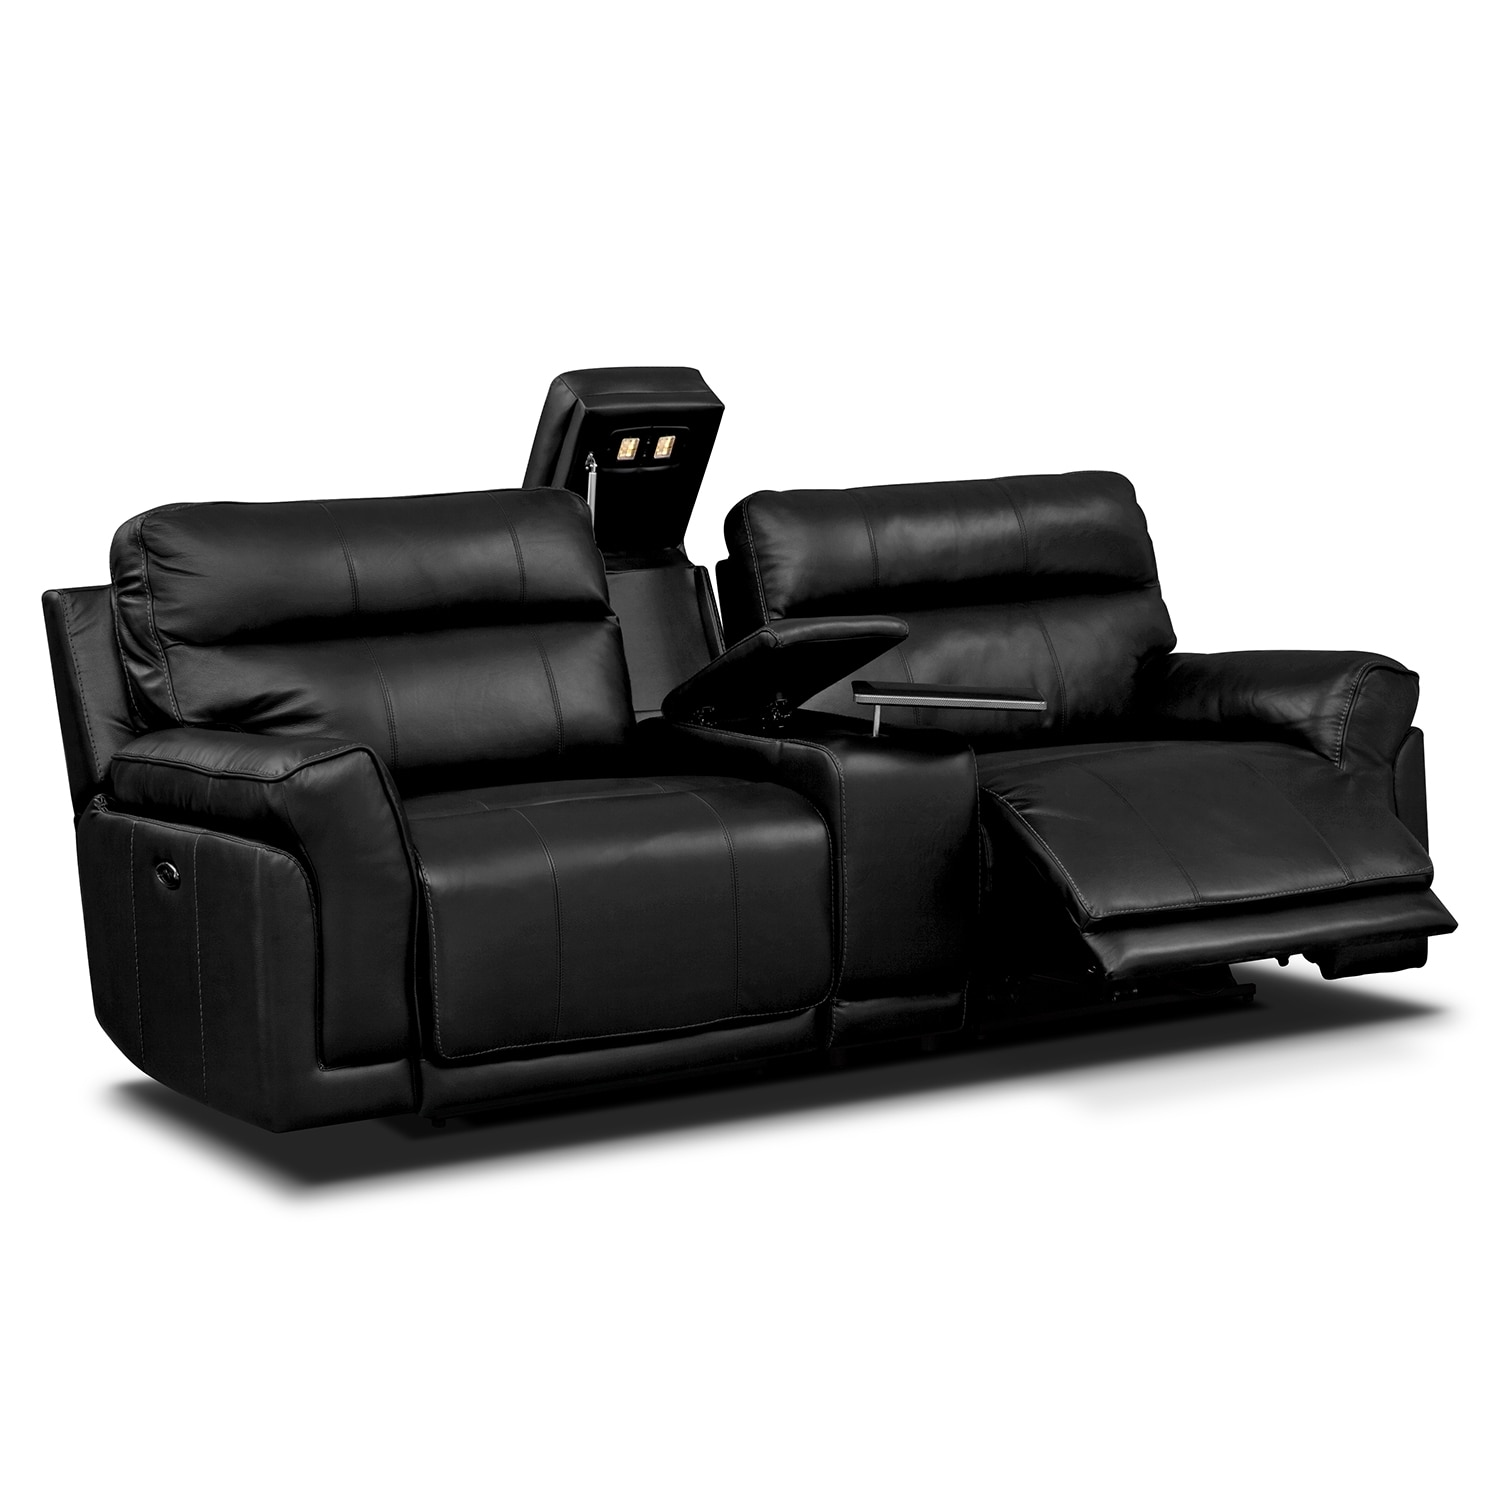 Antonio black power reclining sofa with console Loveseats that recline